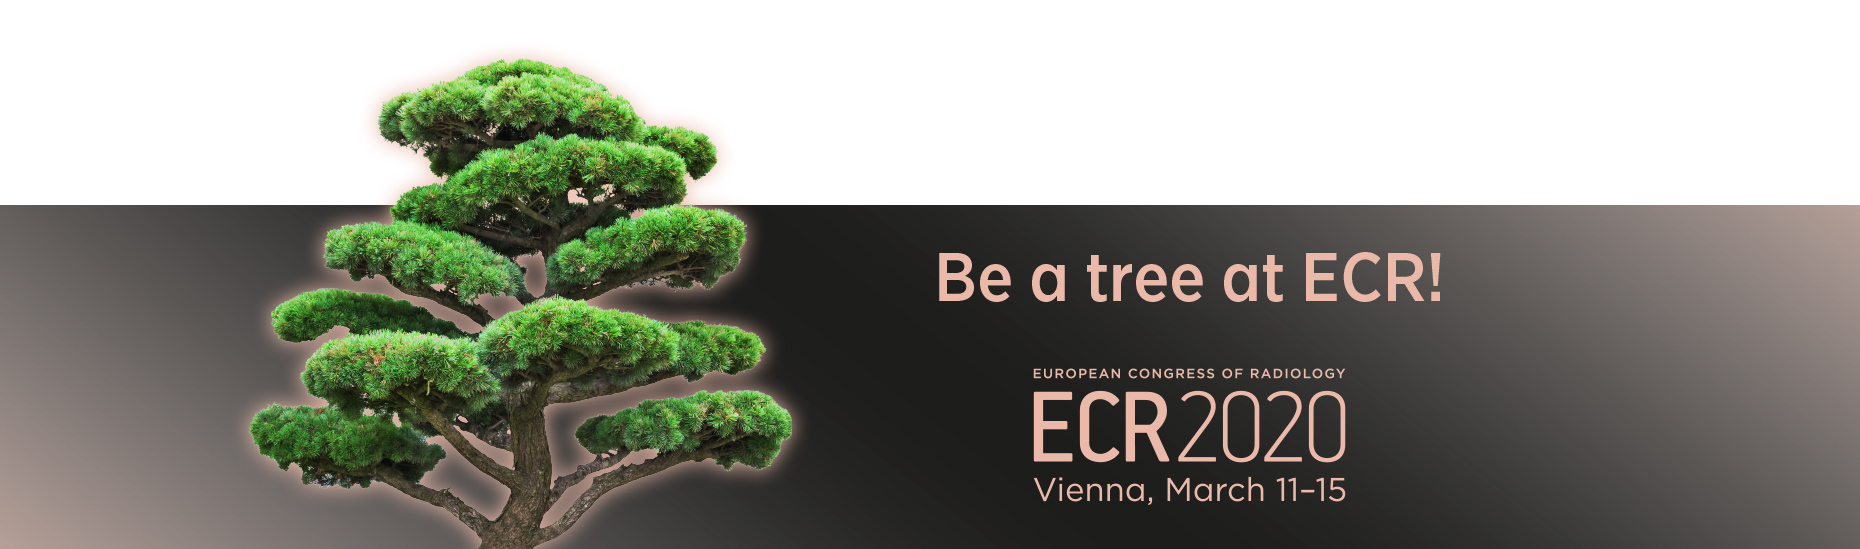 Be a tree at ECR 2020